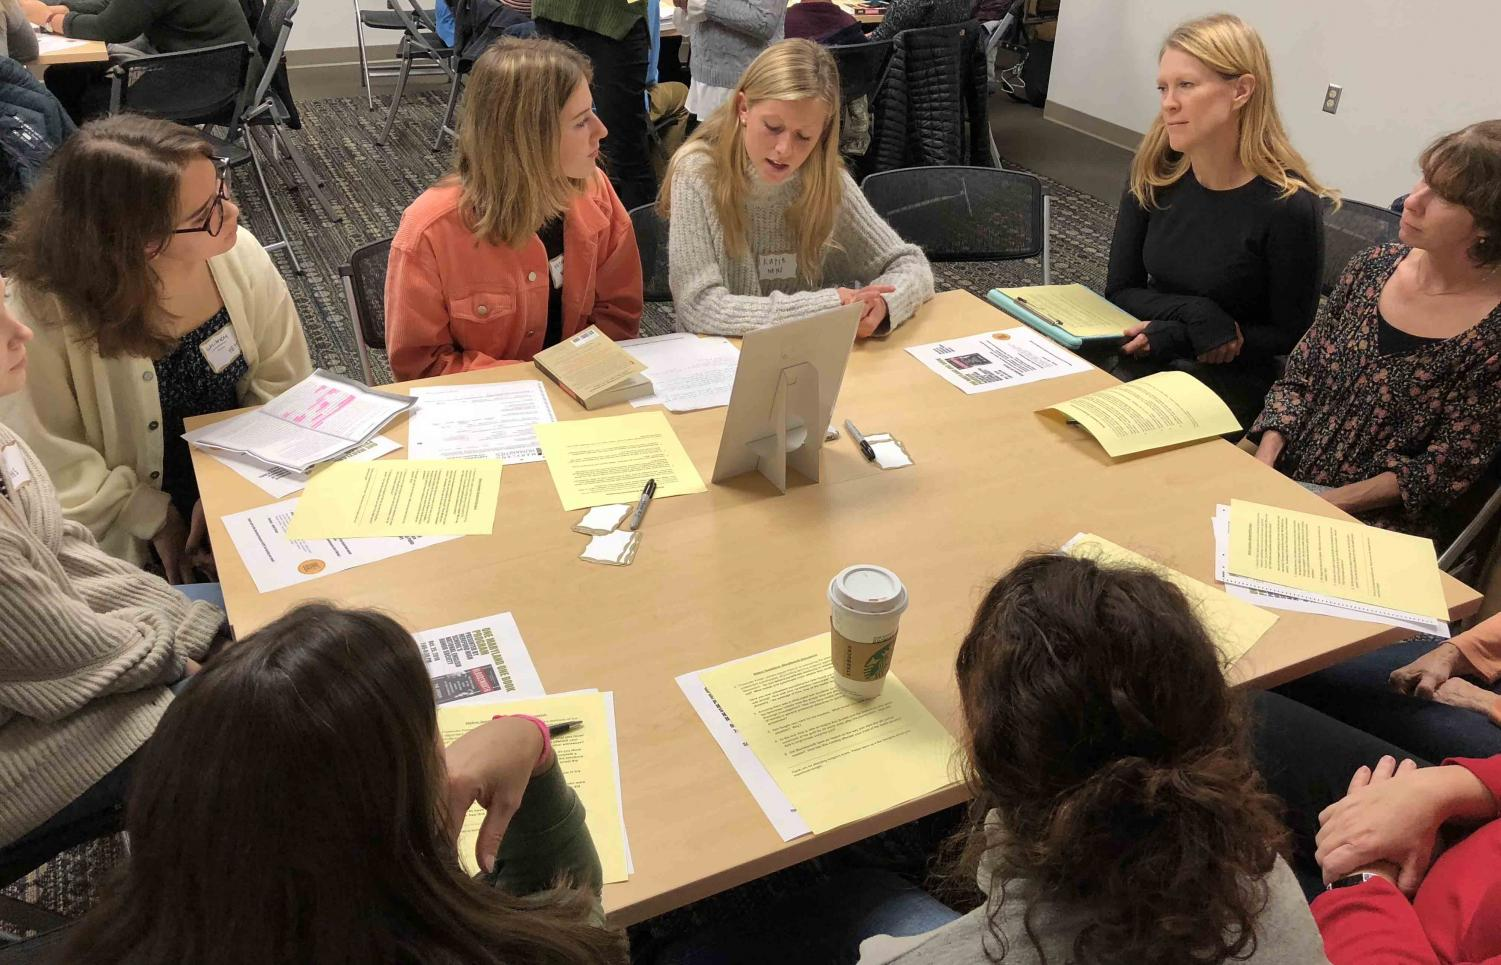 Victoria Westra ('20) asks questions to further the conversation about the book Bloodsworth. Members wrote questions before the book talk to be prepared to lead the group discussion.